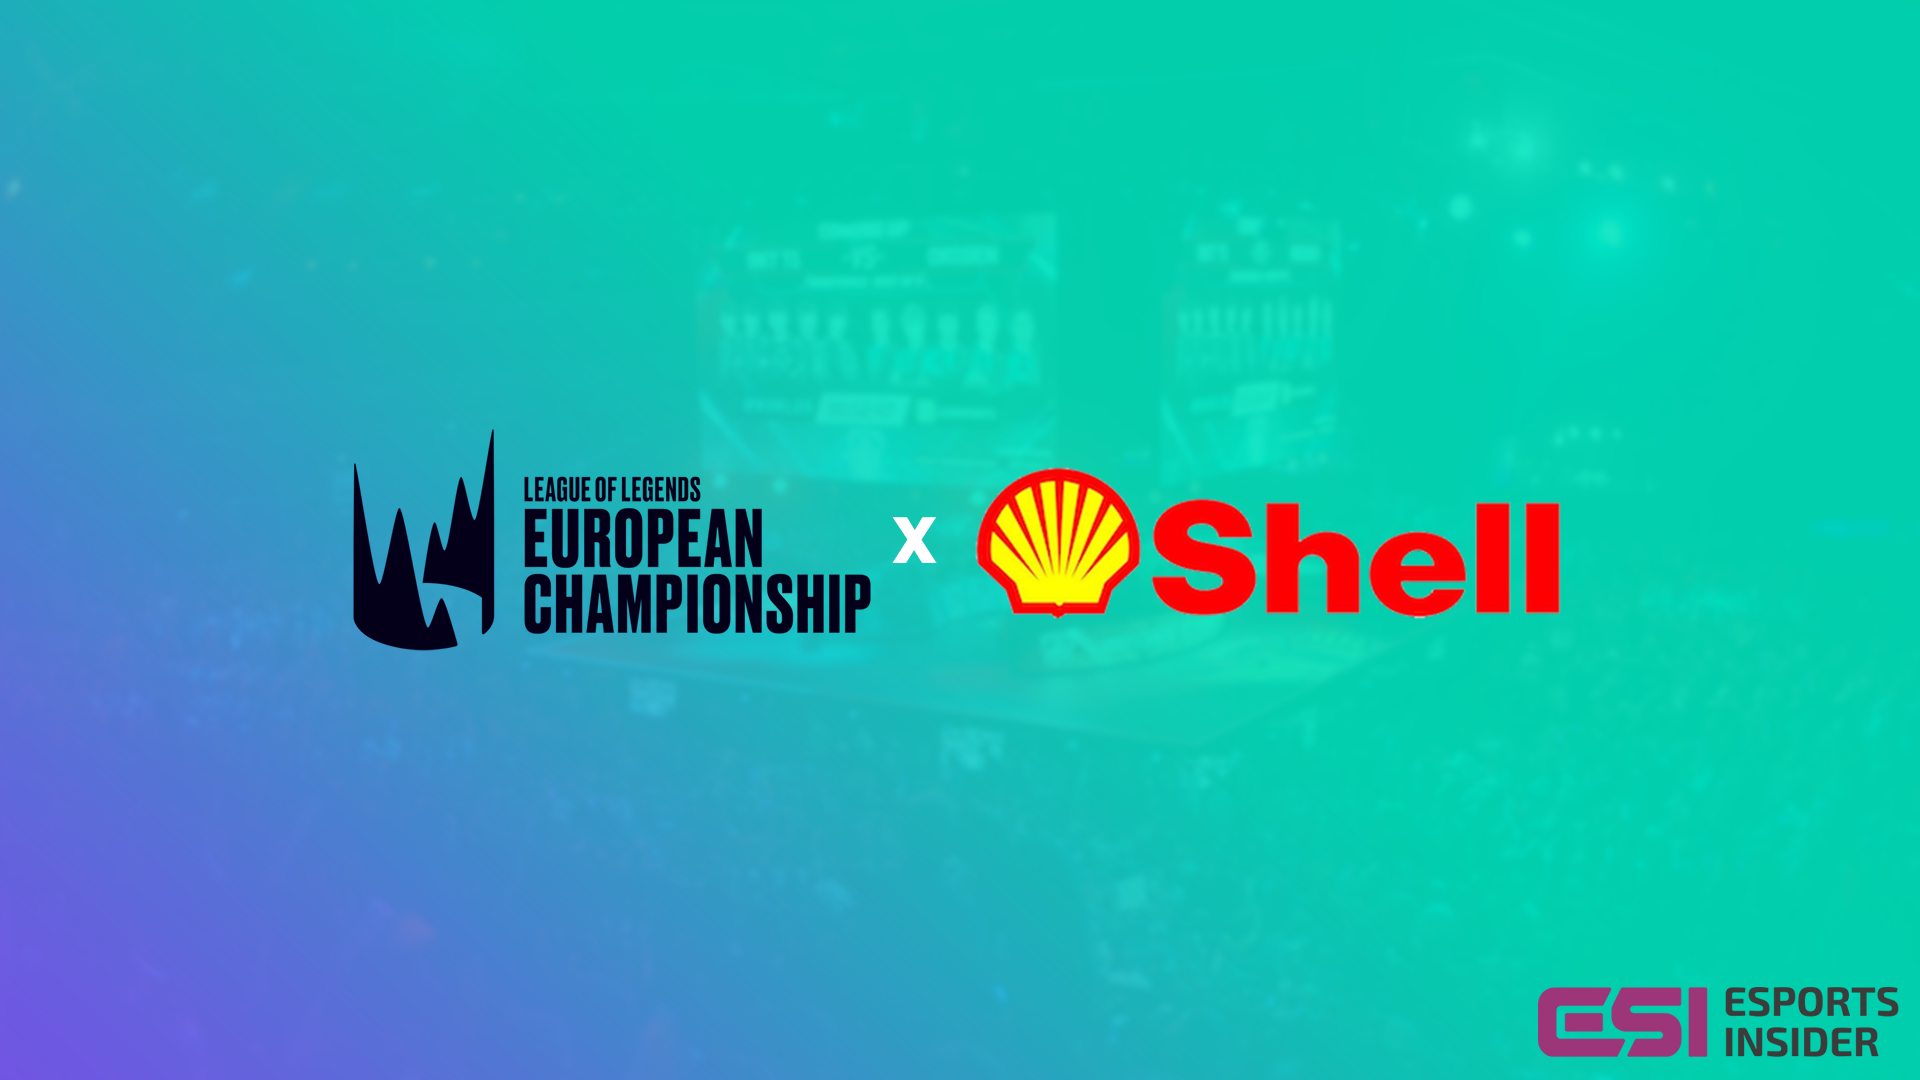 SHELL - This week in esports: Shell, Puma, Mercedes-Benz, Panini